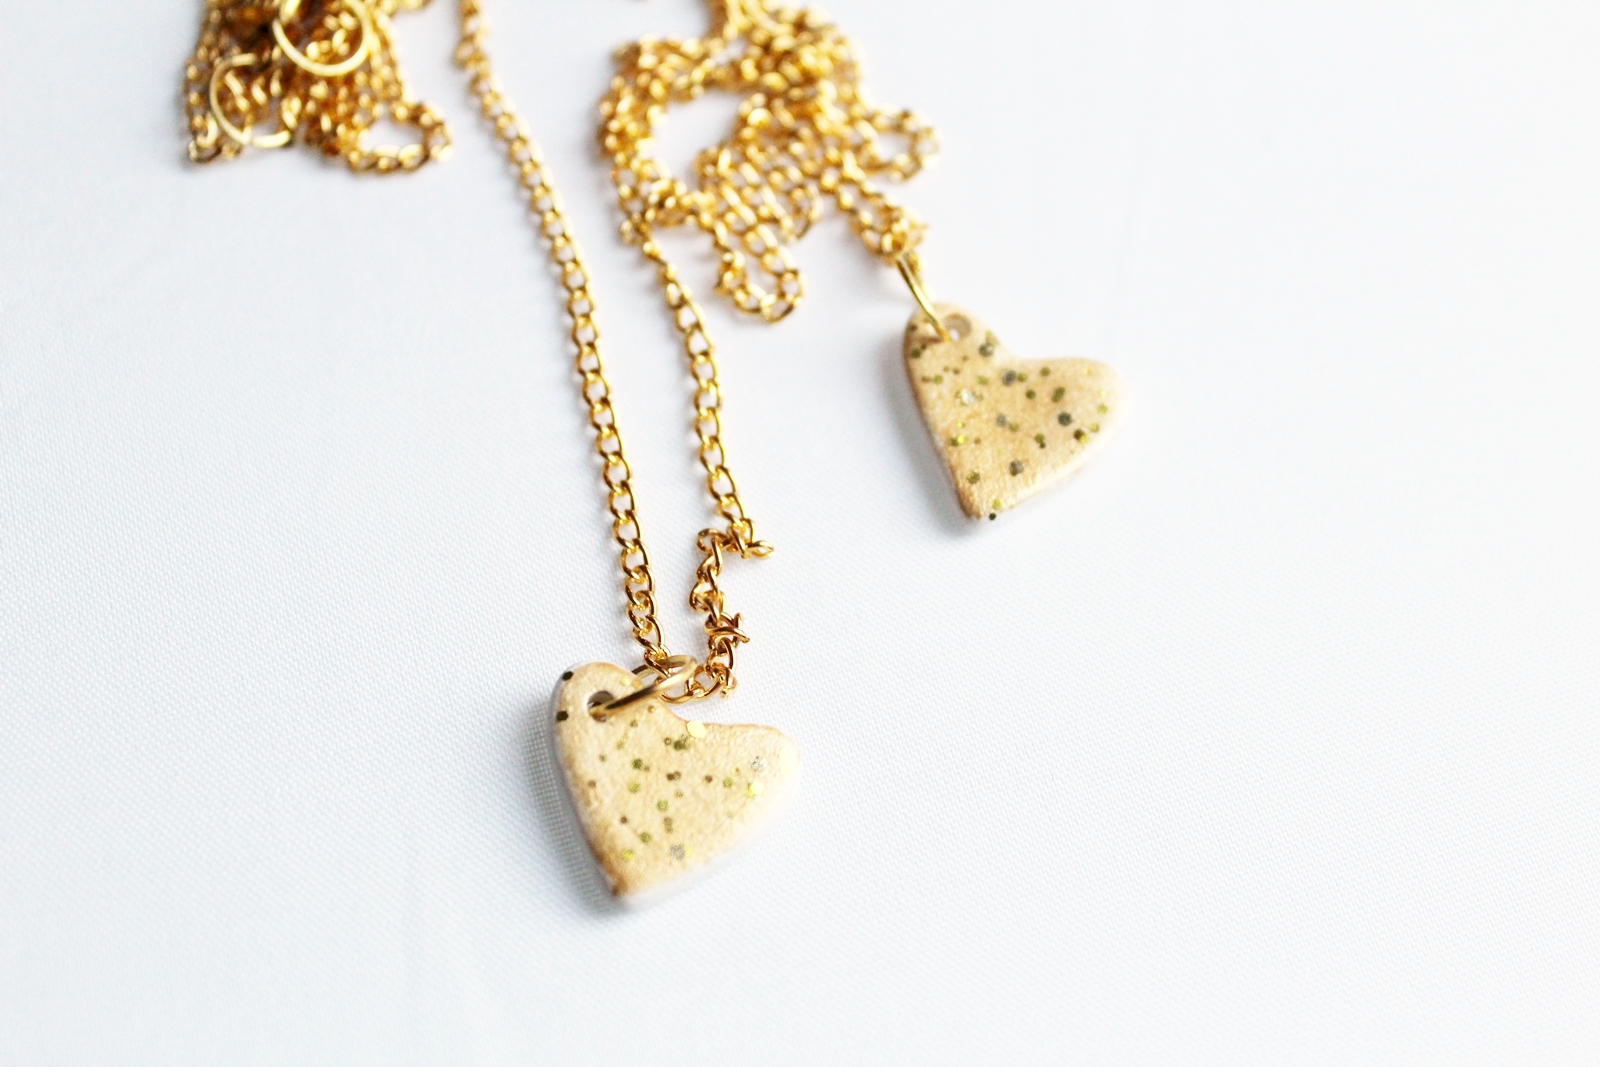 Gold dust ceramic heart necklaces